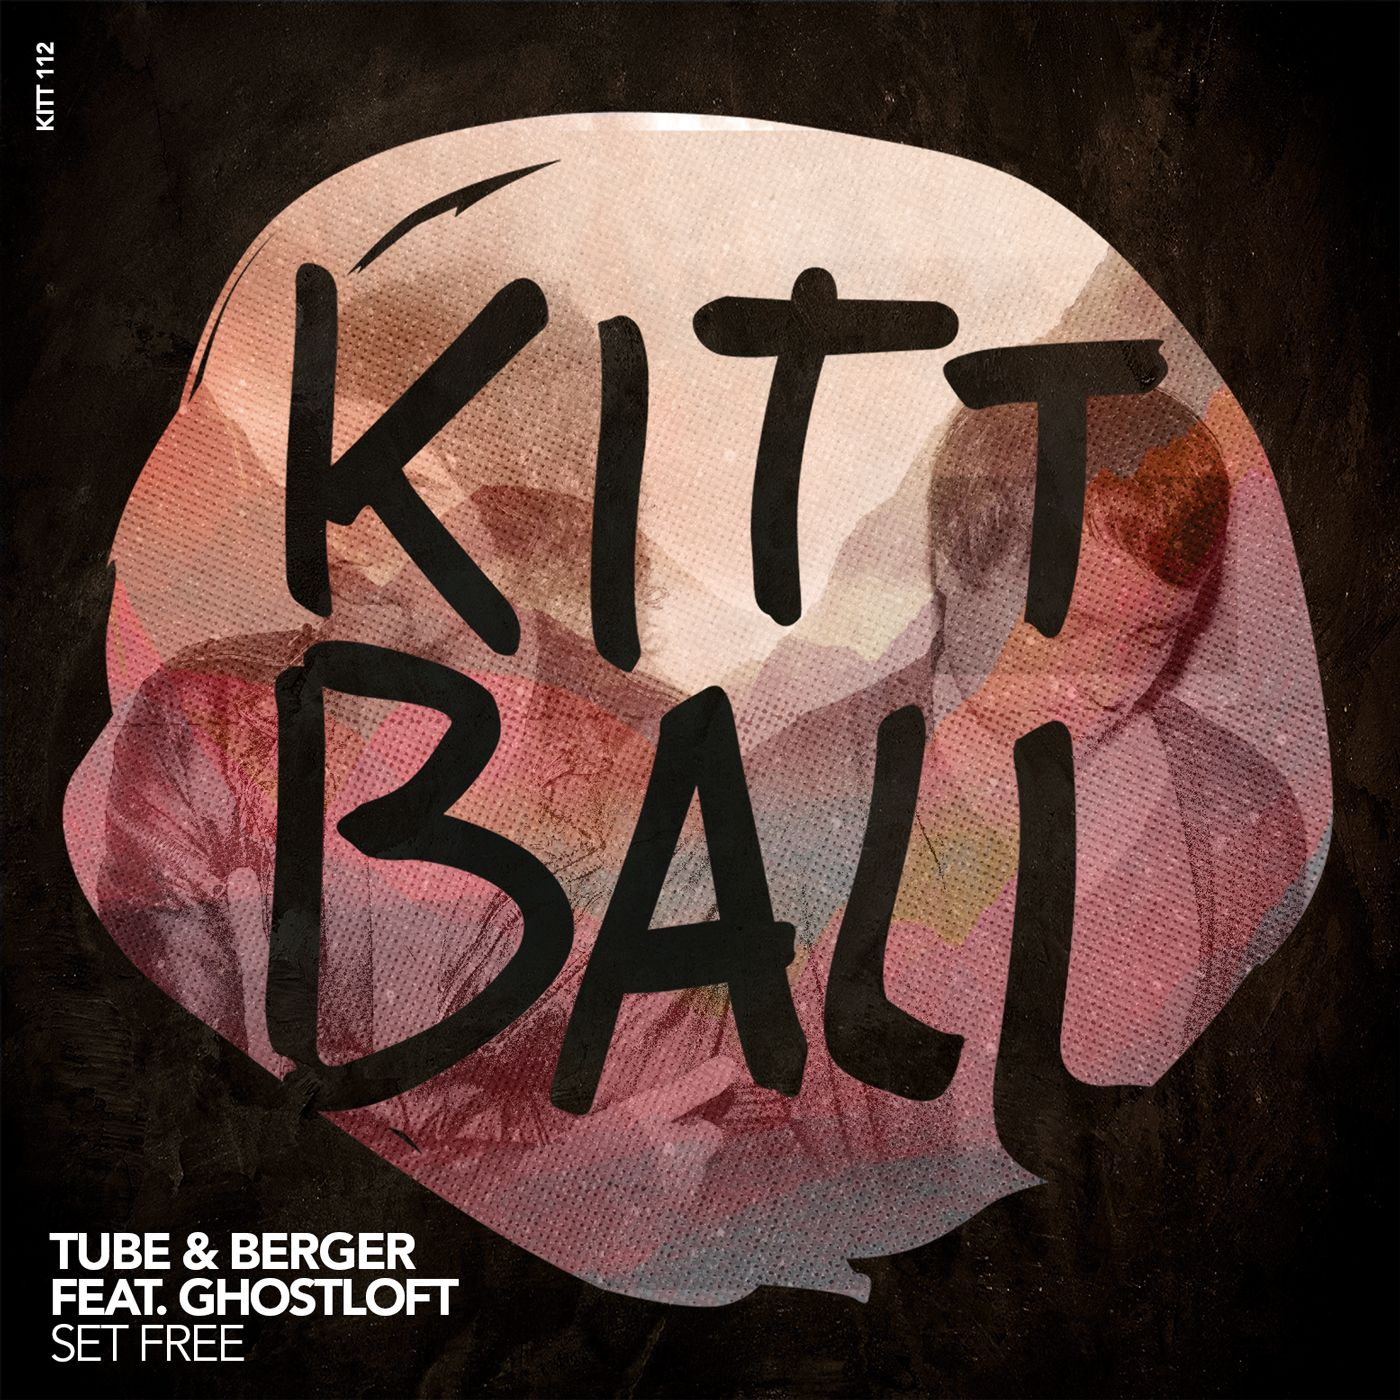 packshot_tube_berger_feat._ghost_loft_-_set_free_-_kittball_records_-_kitt112.jpg